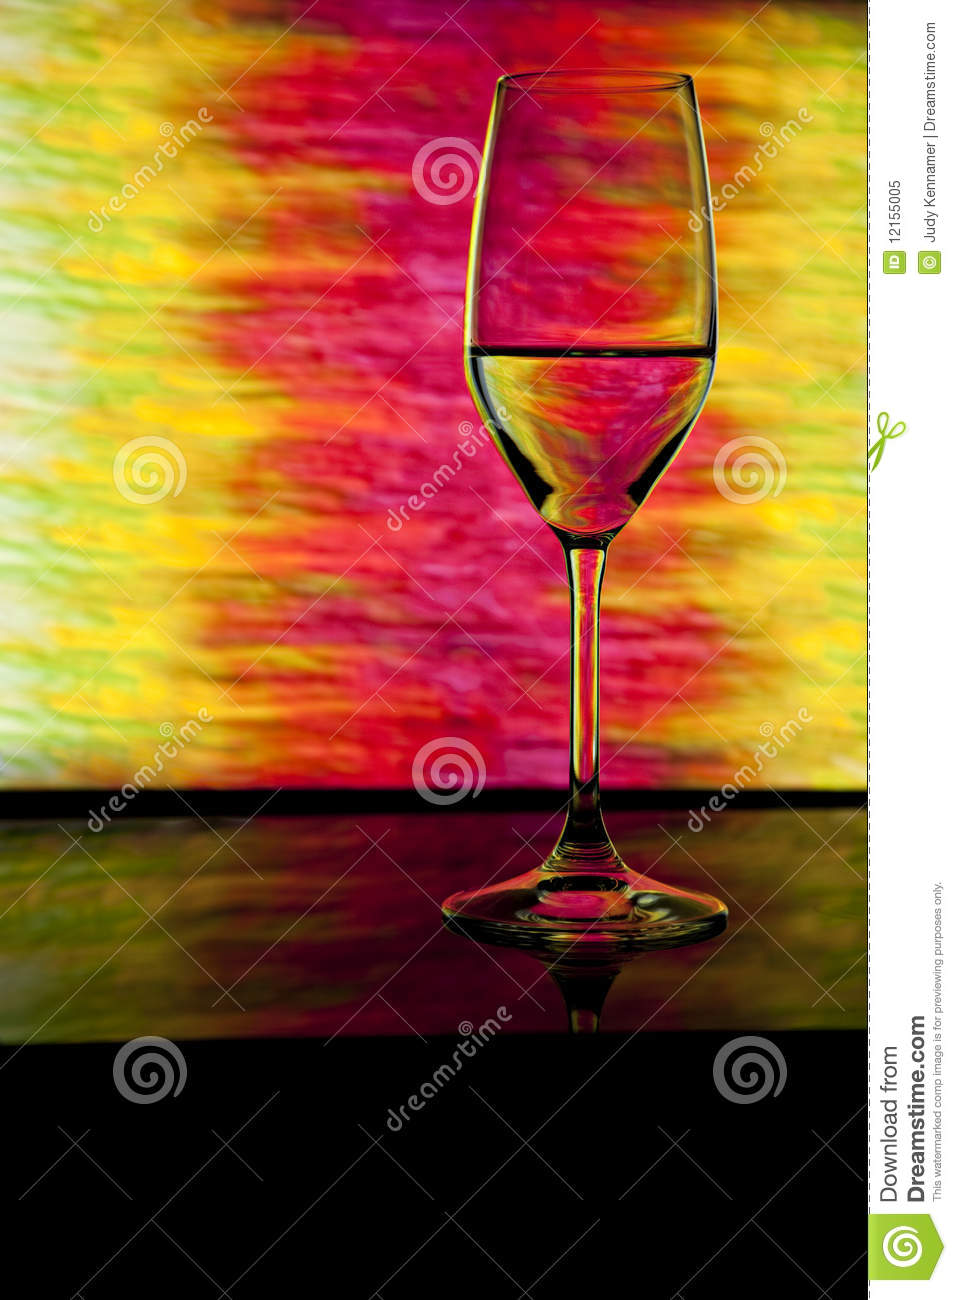 Wine glass in front of colorful background